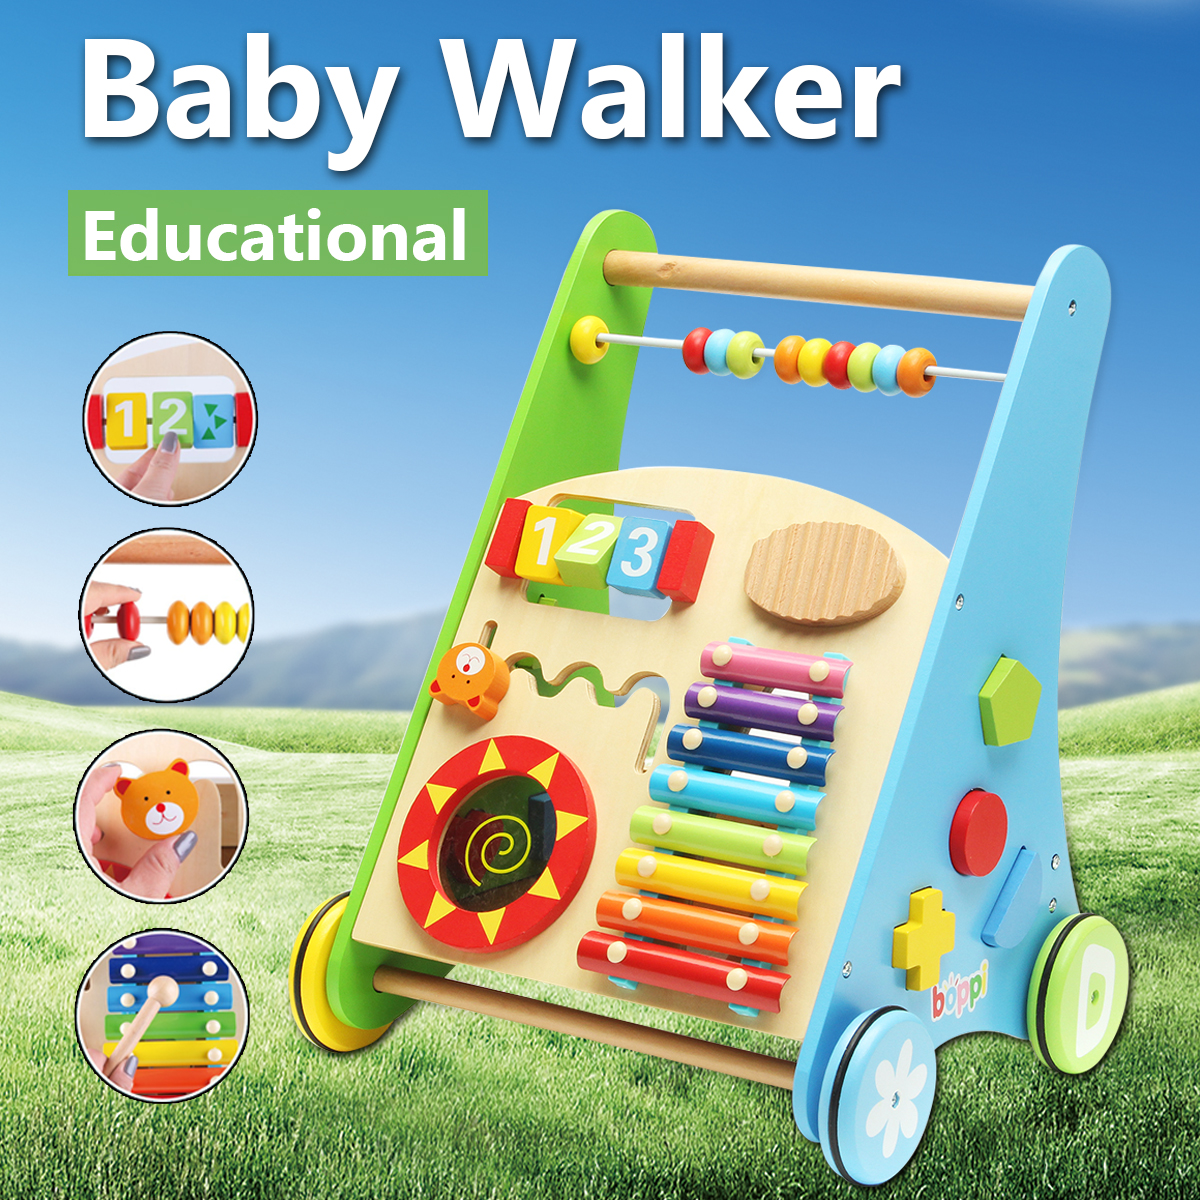 Wooden Toy Cabinet Baby Walker Cart Baby Early Education Multi-purpose Vehicle Toy Early Puzzle Toy For Kids Birthday Gift cute baby swing car walker without foot pedal scooters toddler stroller kids toy birthday gift